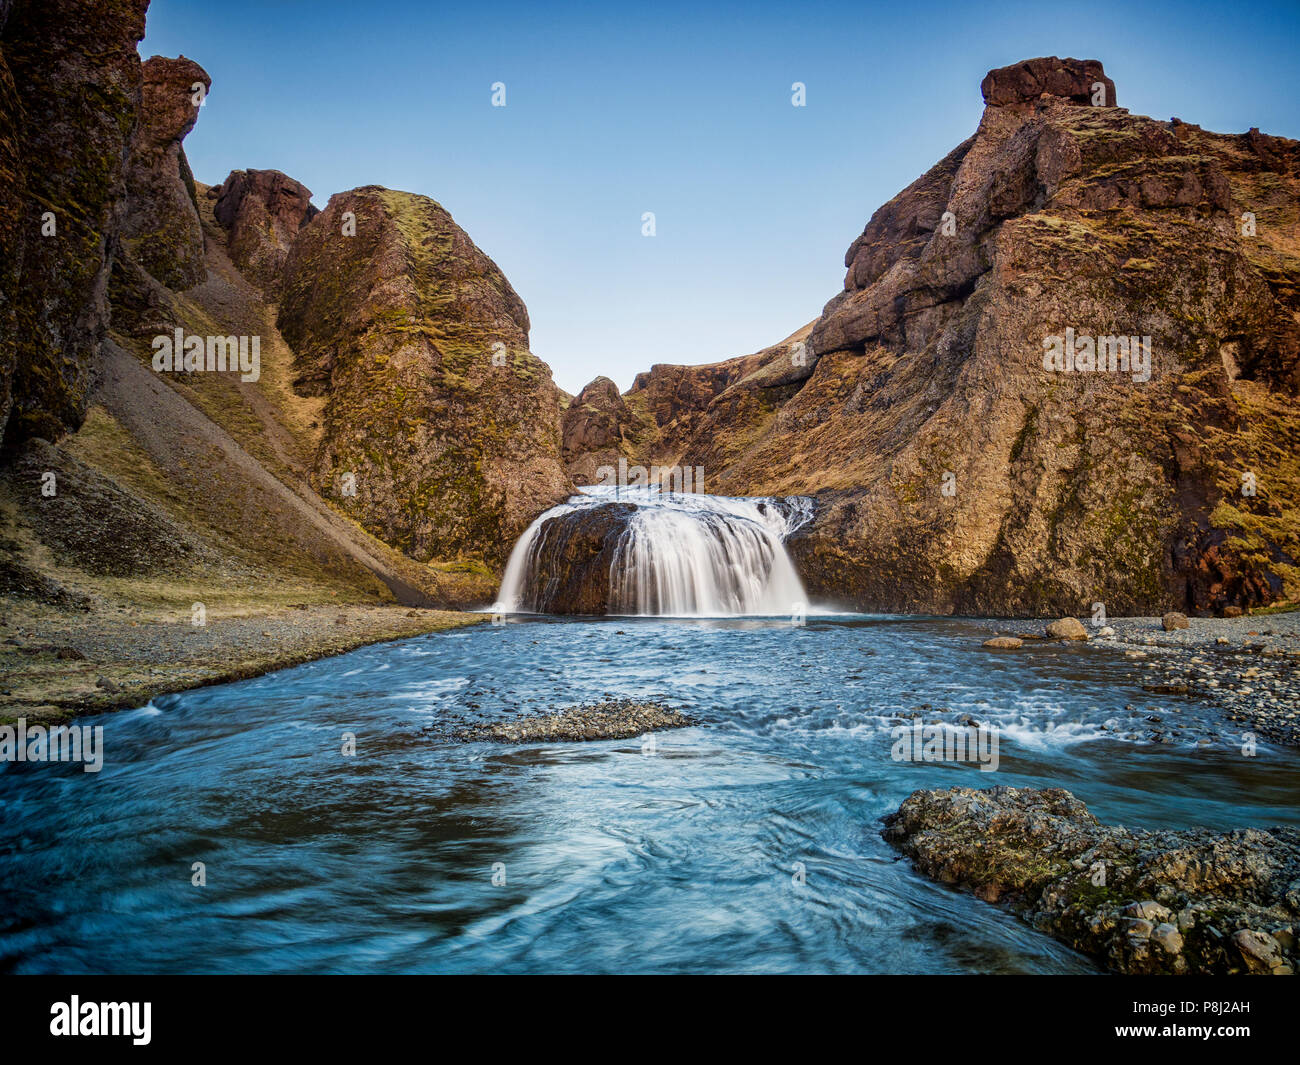 Stjornarfoss waterfall on the Stjorn River at Kirkjubaejarklaustur, in southern Iceland - Stock Image